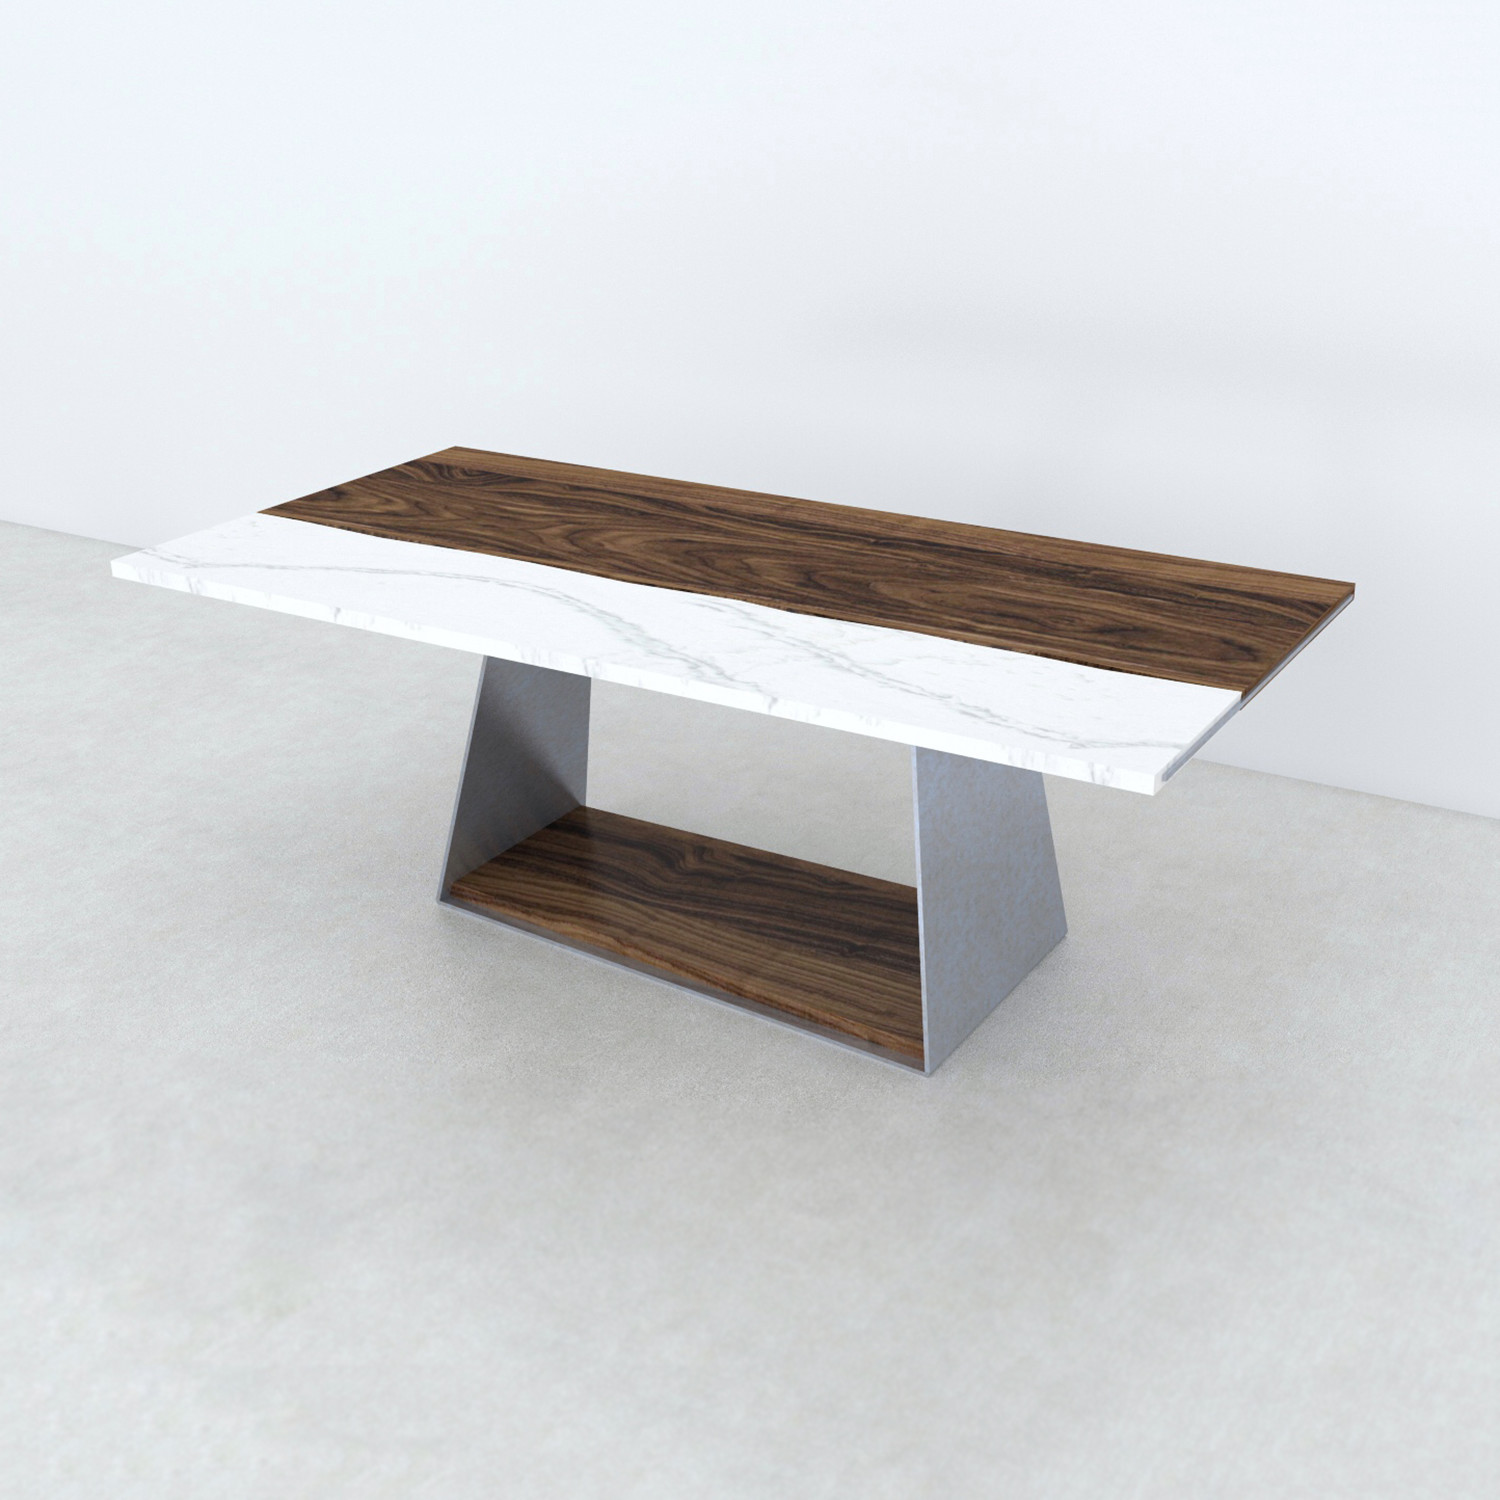 dining table live edge black walnut cambria quartz. Black Bedroom Furniture Sets. Home Design Ideas